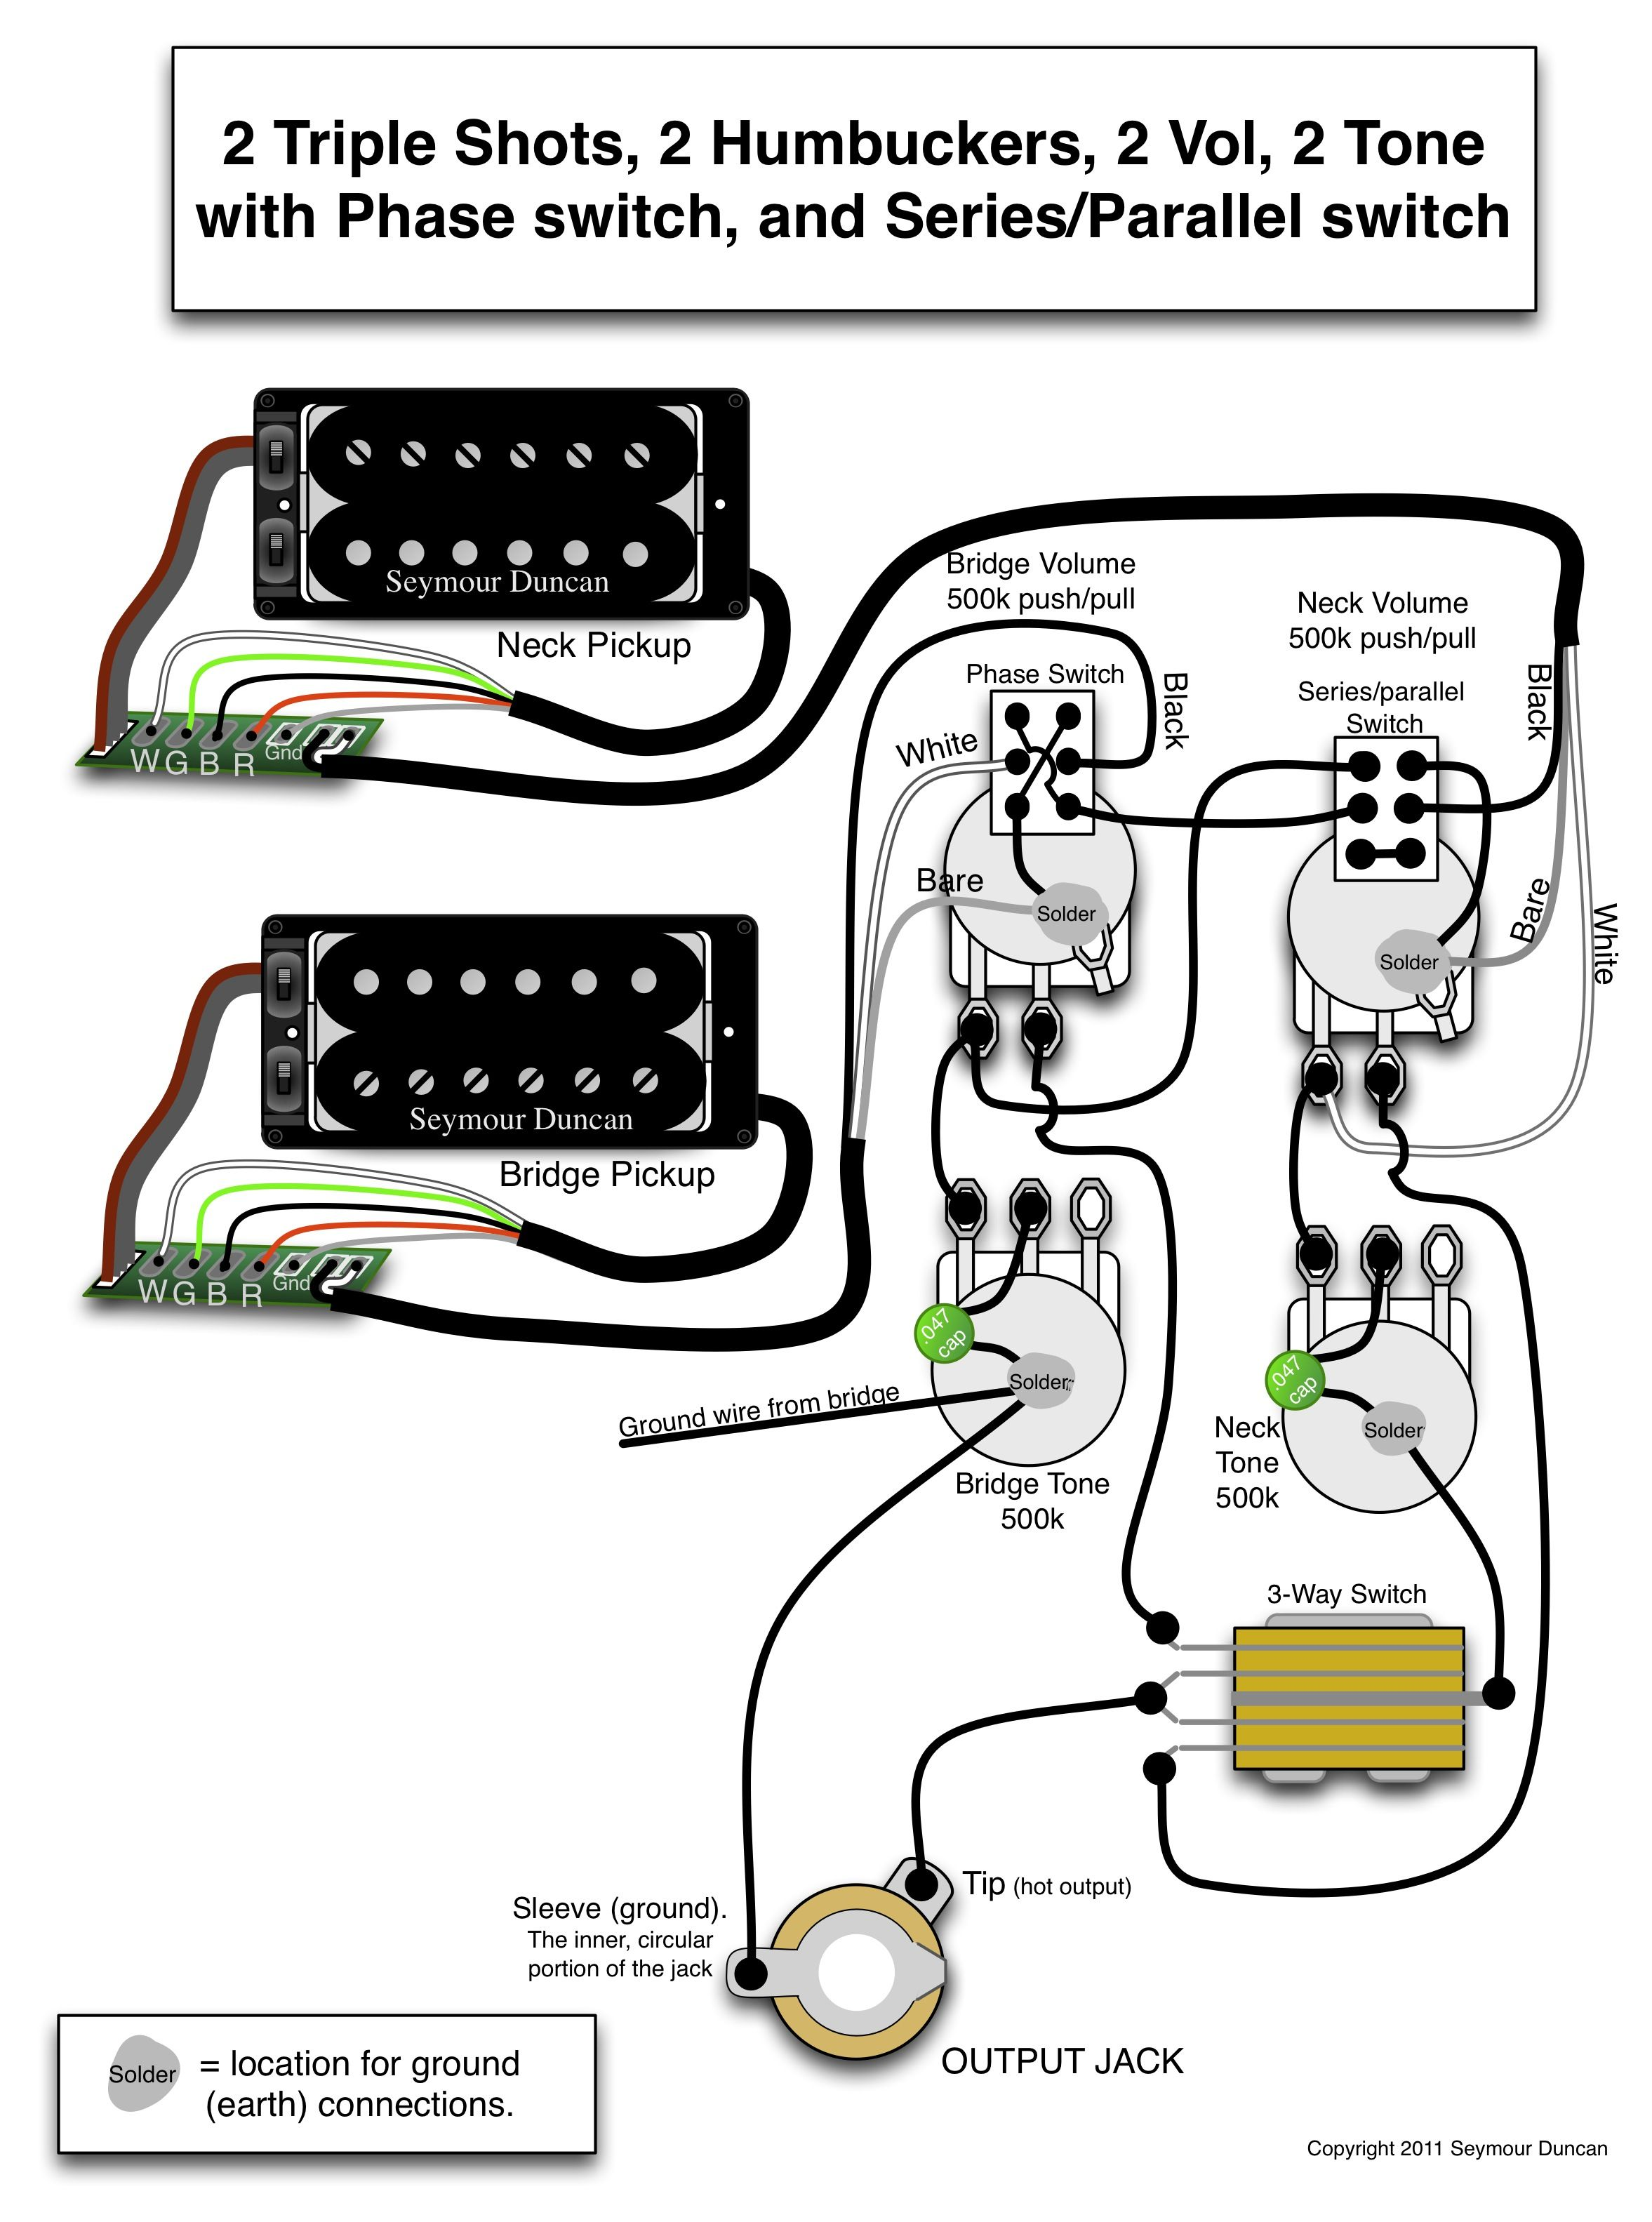 Guitar Wiring Diagram 2 Humbucker : Seymour duncan wiring diagram triple shots